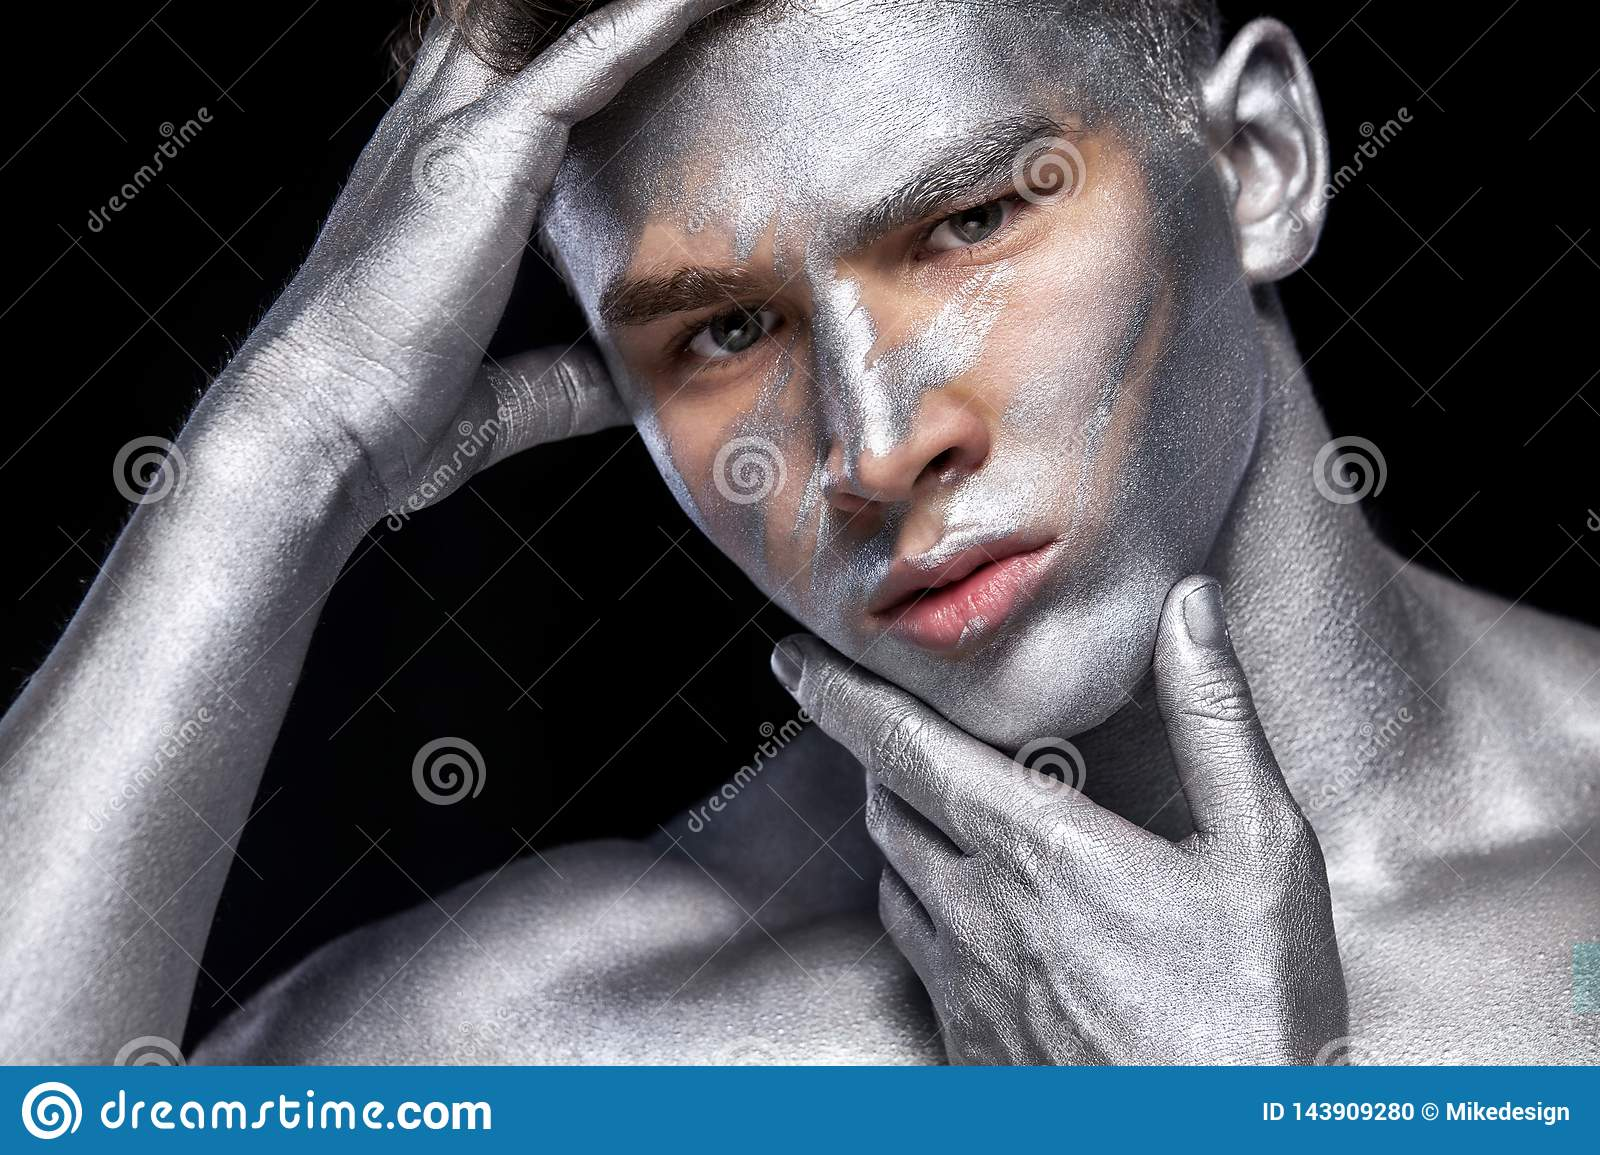 A Fashion Portrait Of Man With Silver Bodyart And Face Art Stock Photo Image Of Bodyart Cute 143909280